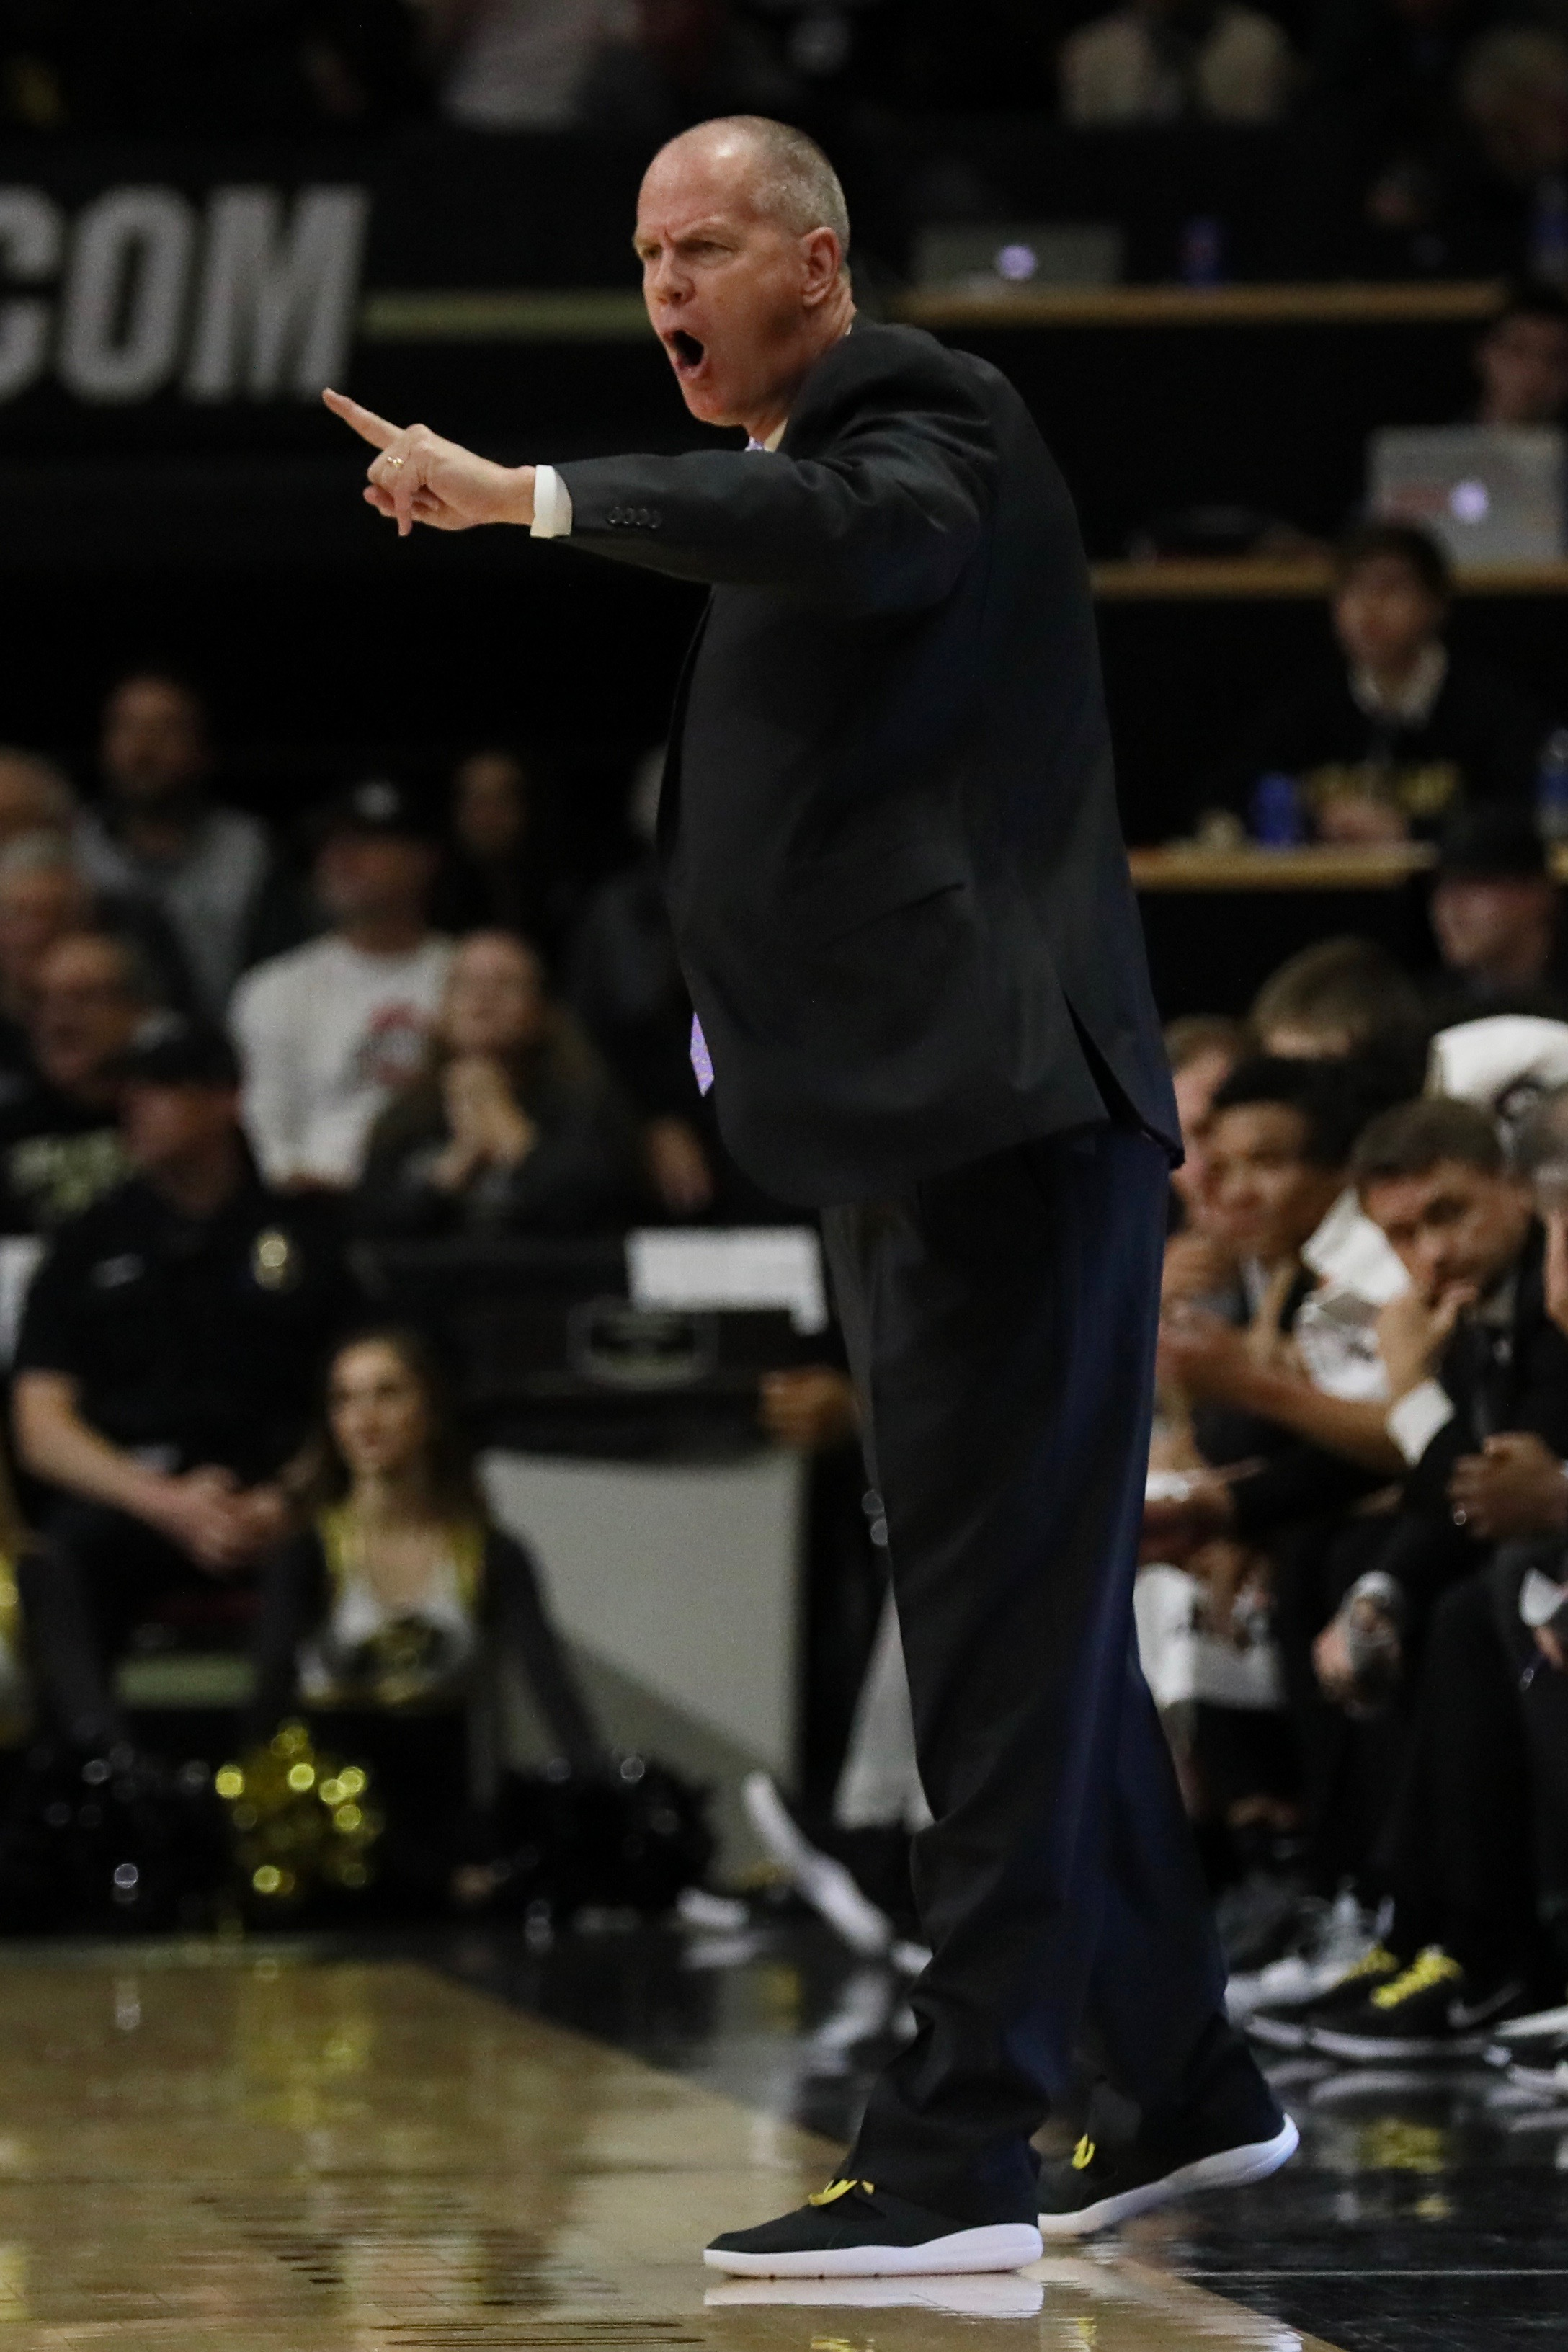 Colorado gets revenge on CSU as Buffs best Rams, 86-80